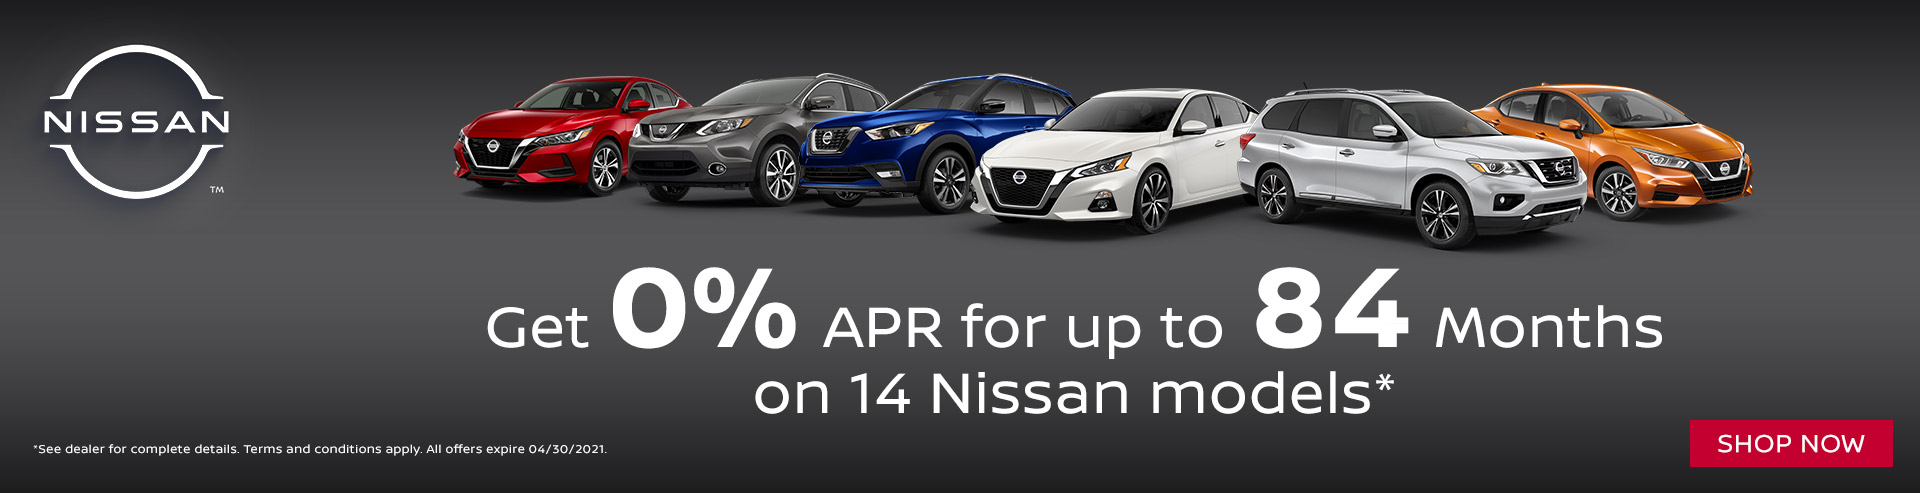 Nissan APR Deals At Galesburg Nissan In Galesburg, IL